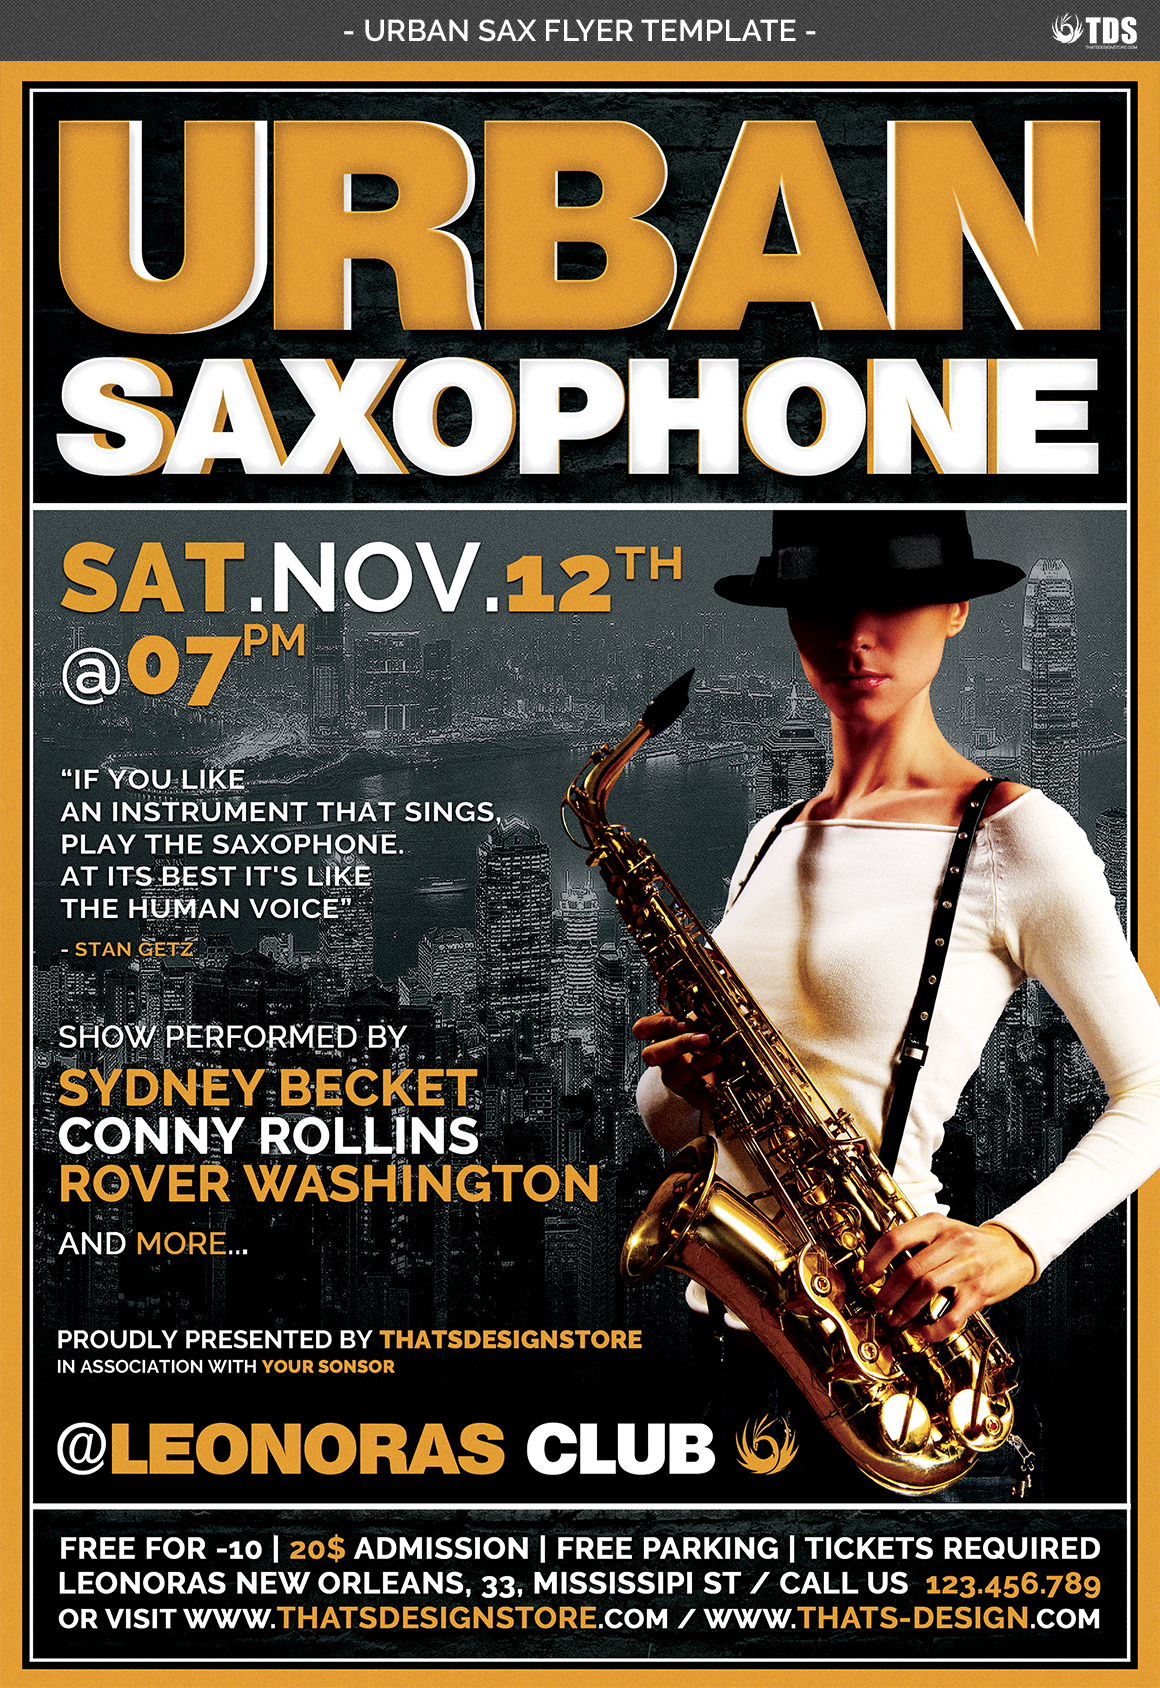 Urban Sax Flyer Template example image 4